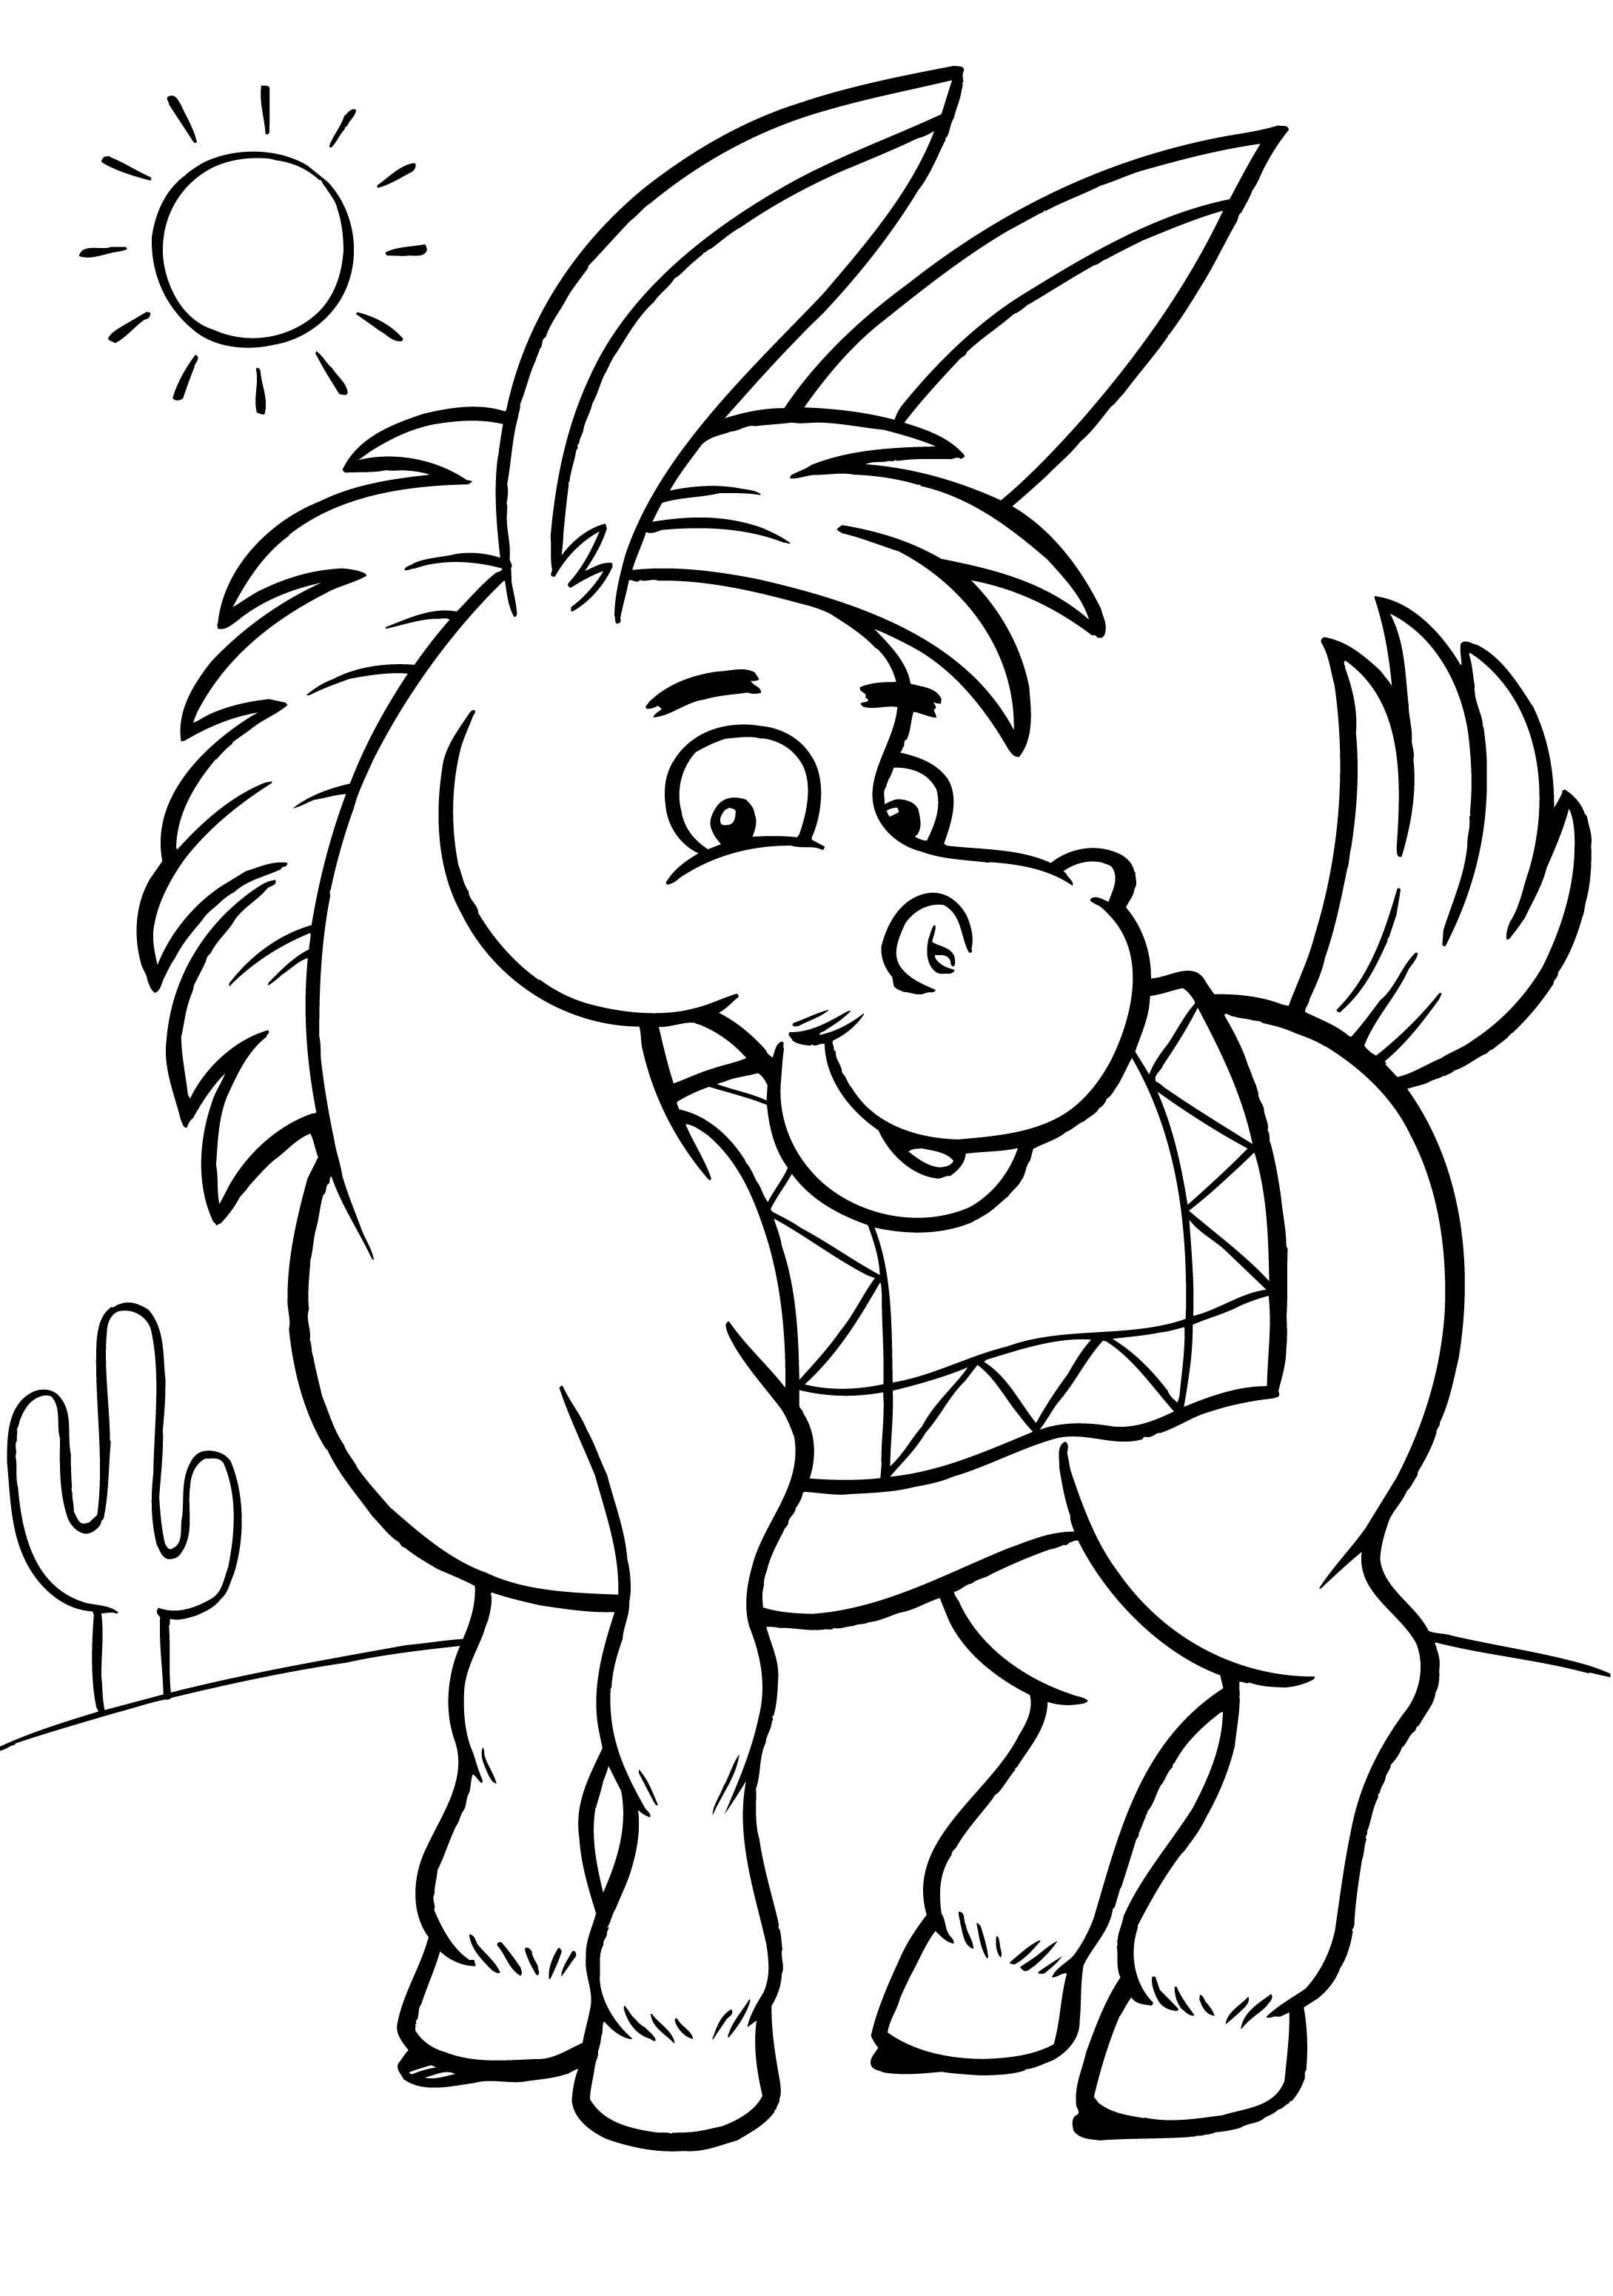 coloring page for kids toys coloring pages best coloring pages for kids for page kids coloring